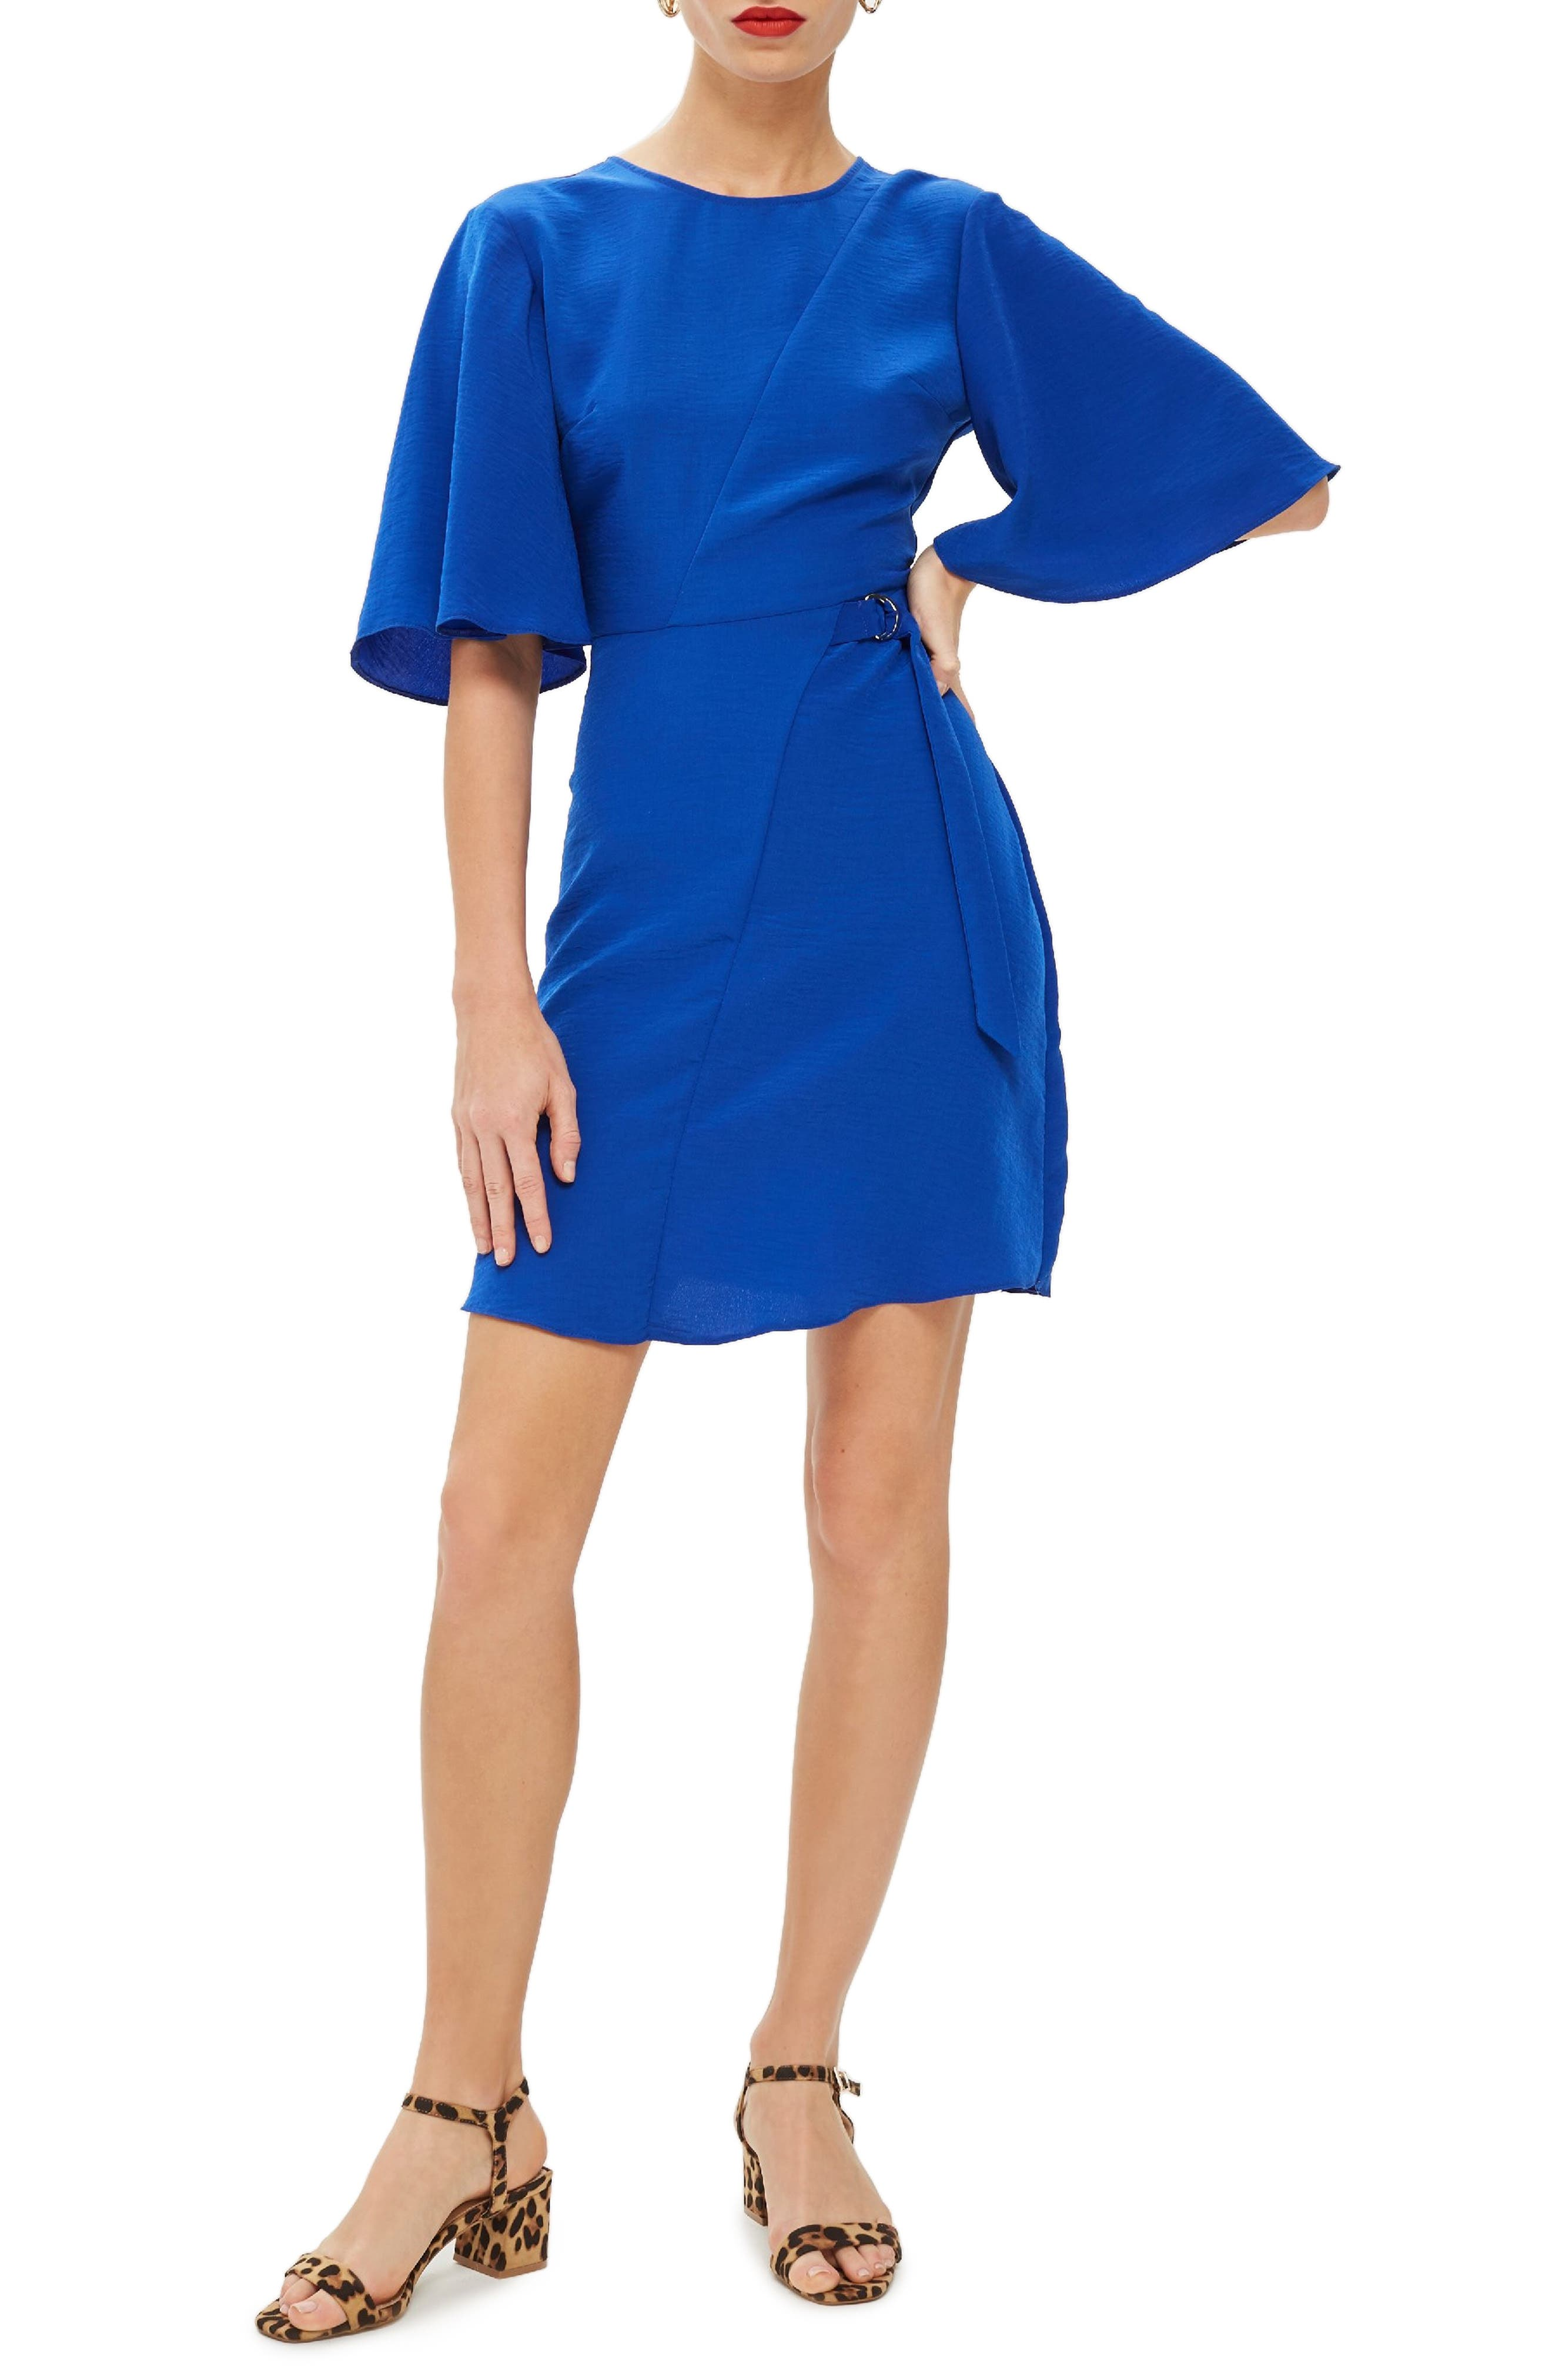 Topshop Cutabout Minidress, US (fits like 0) - Blue